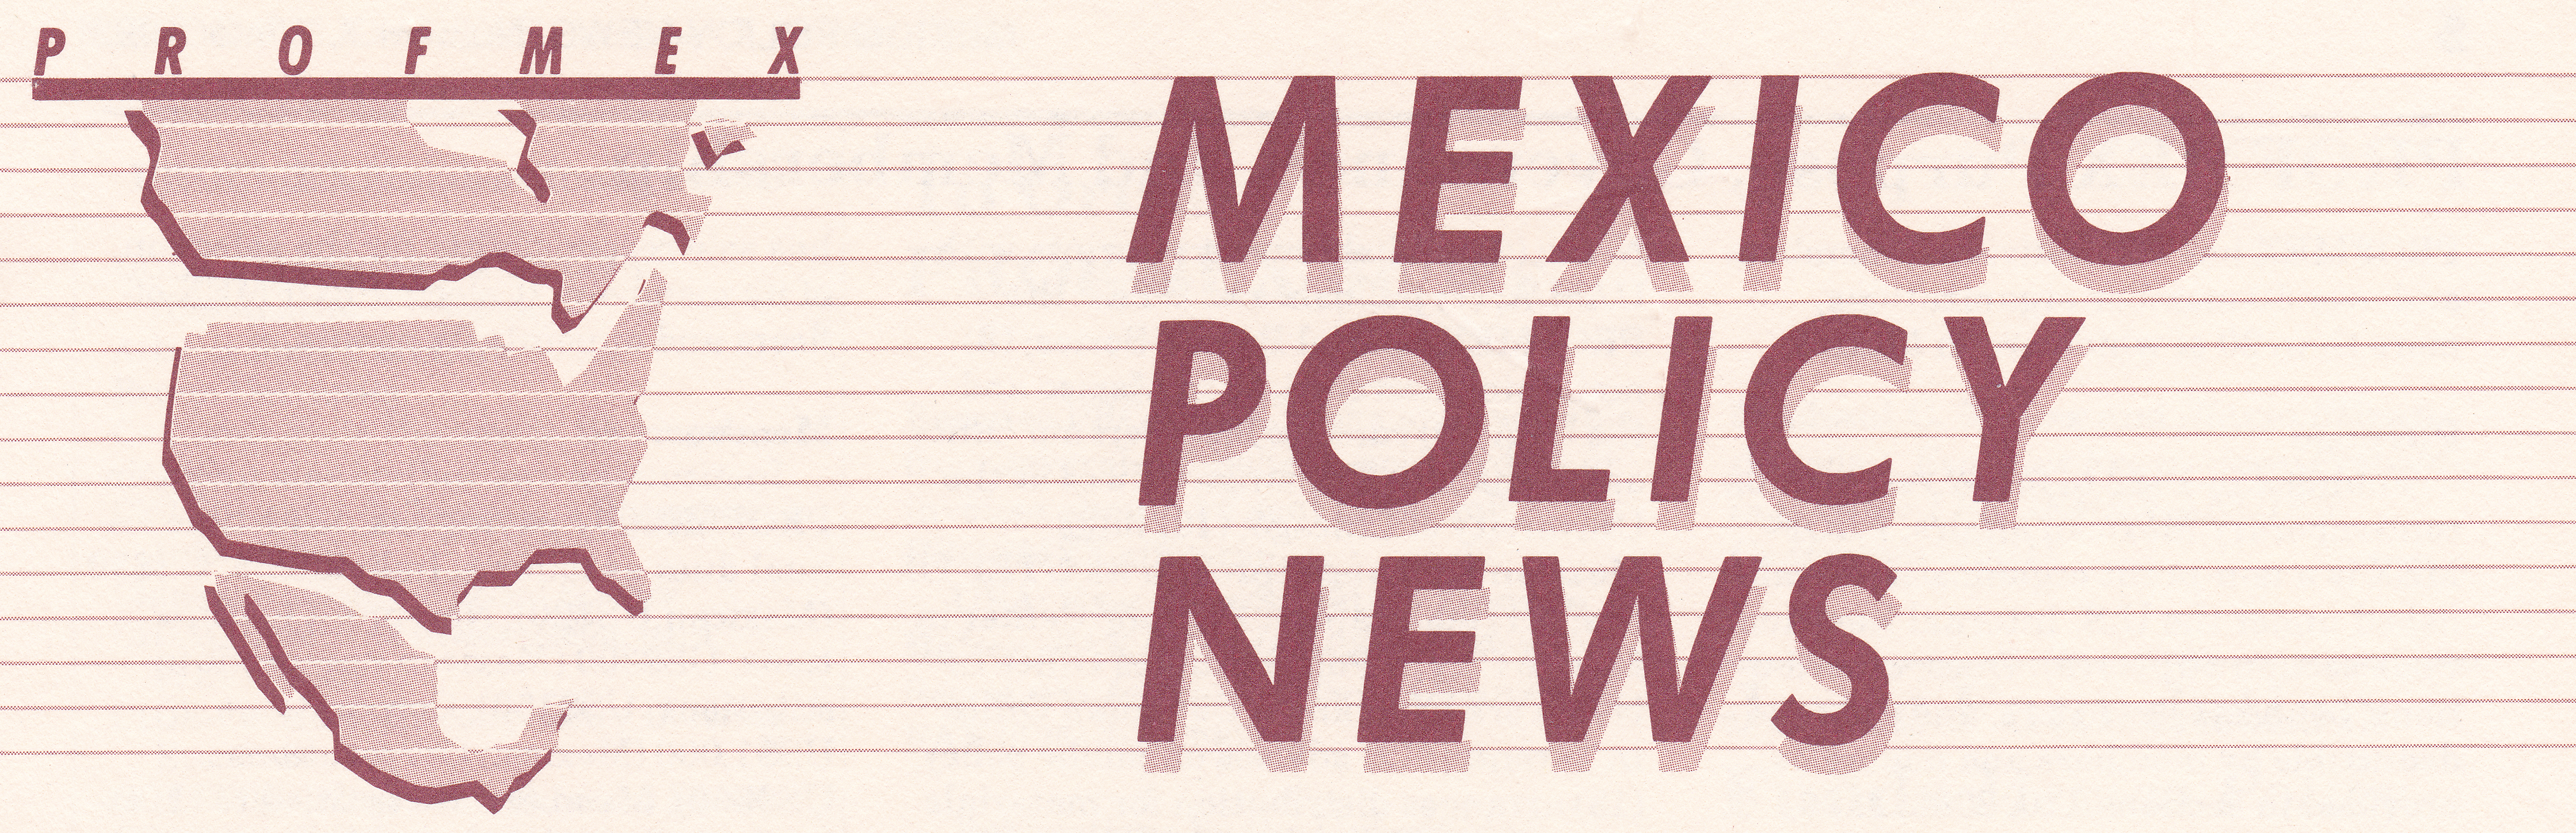 Mexico Policy News